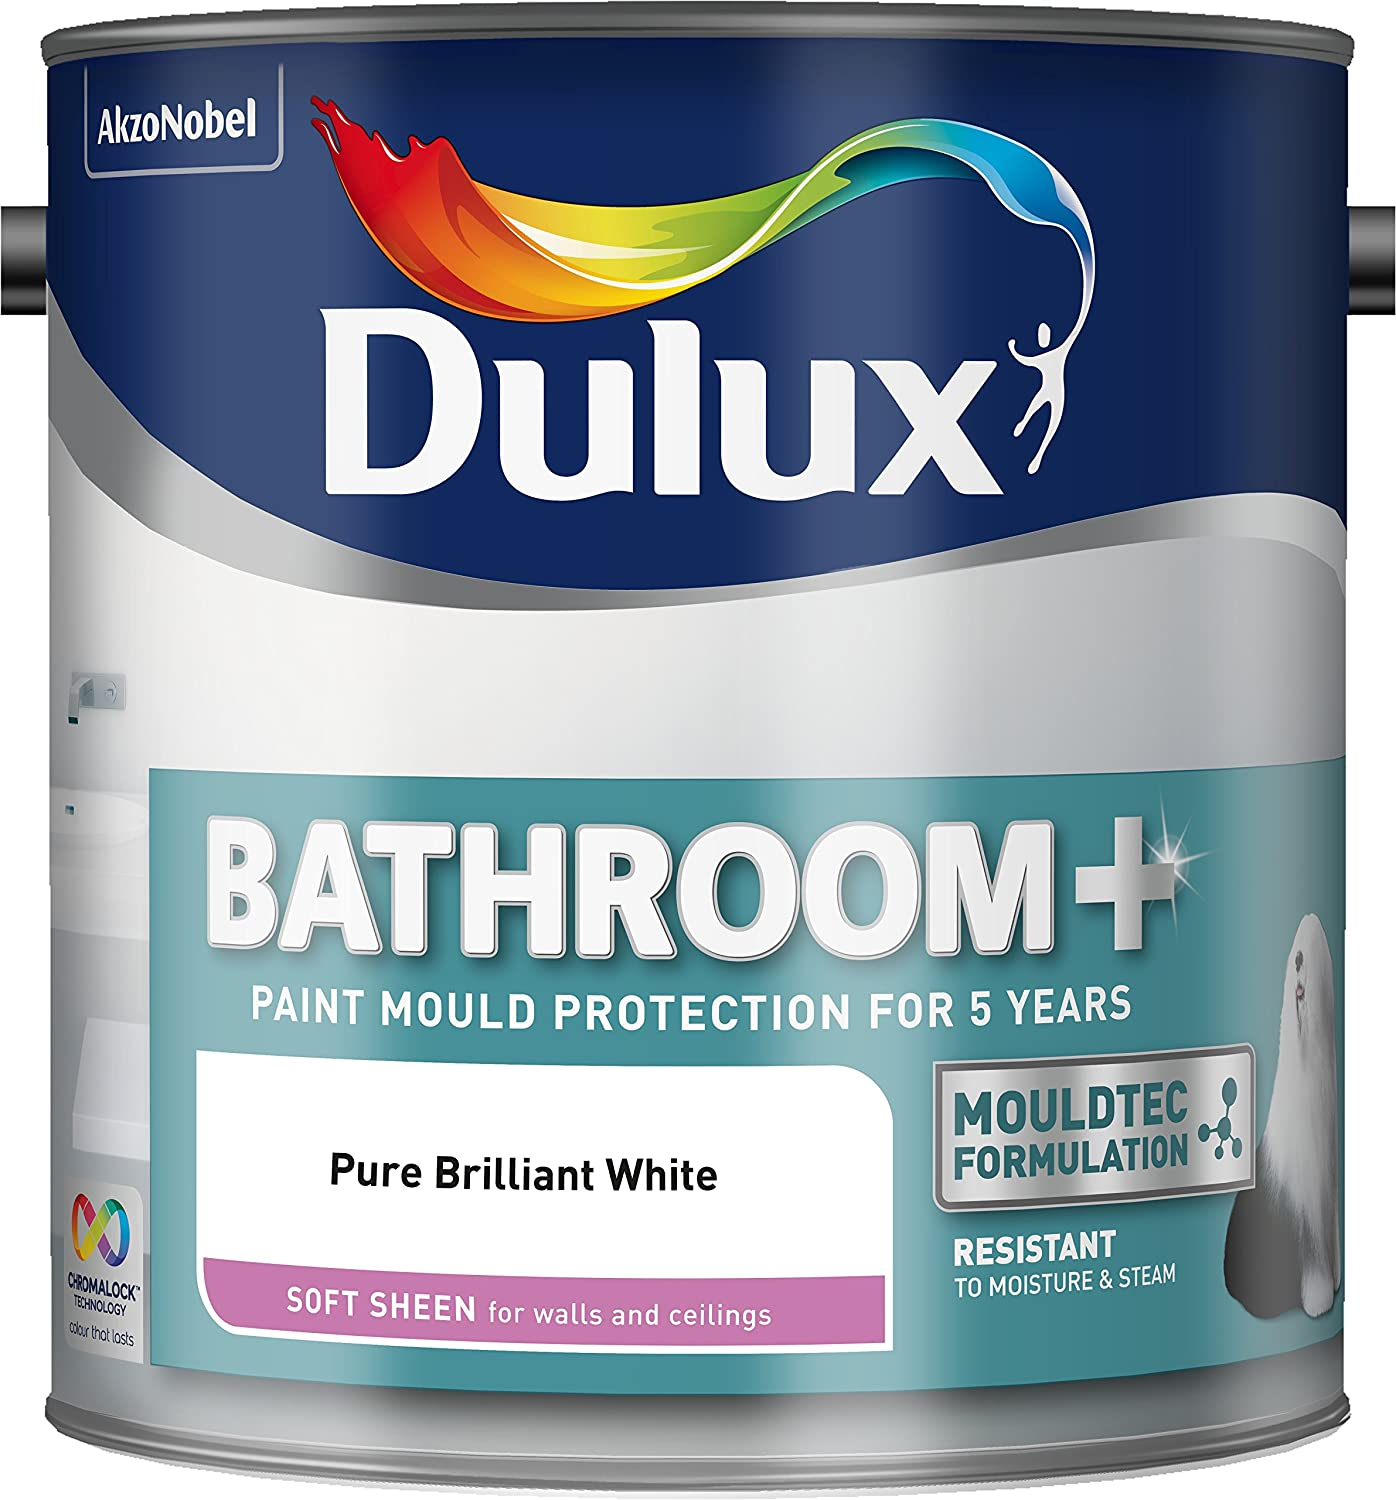 Do you need to use bathroom paint - Dulux Bathroom Plus Soft Sheen Paint 2 5 L Pure Brilliant White